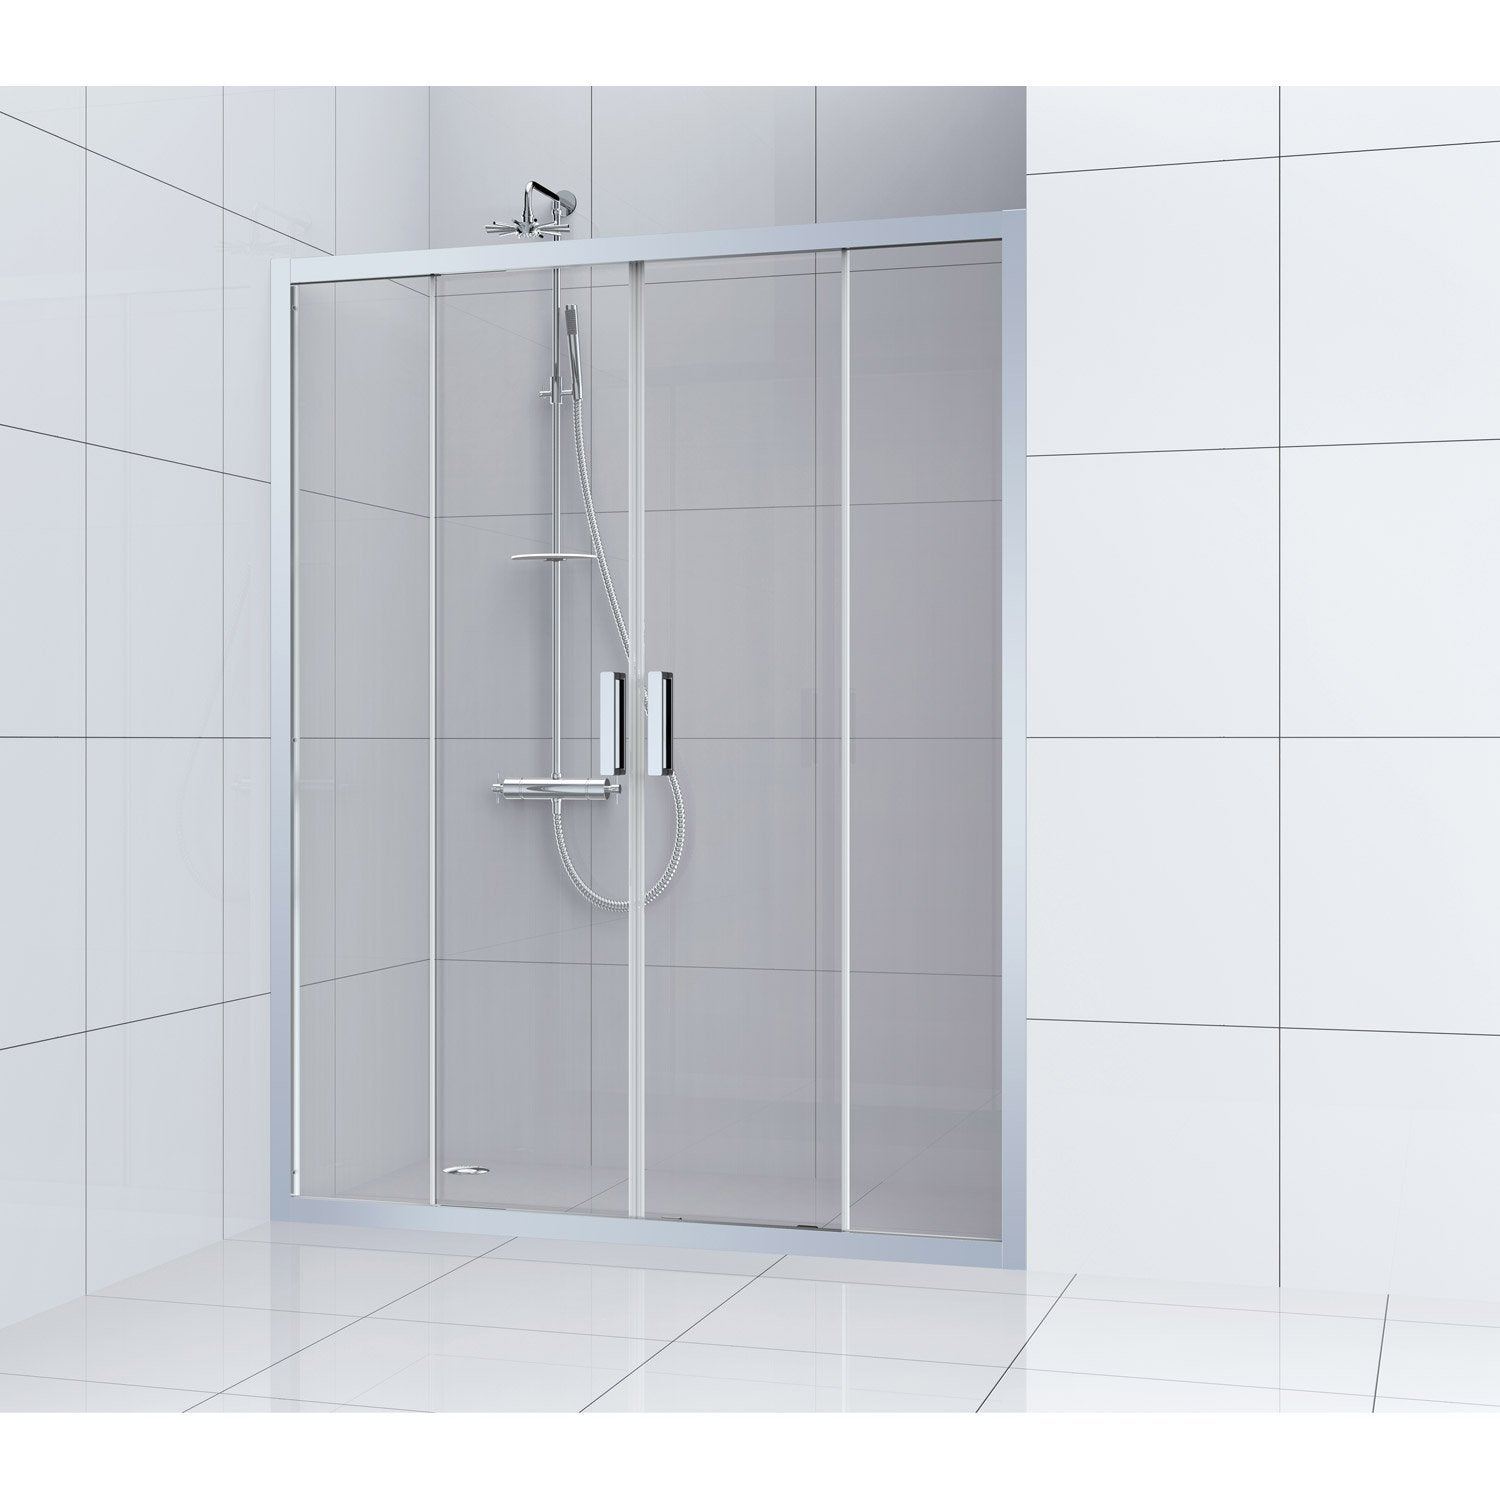 porte de douche coulissante 160 cm transparent charm leroy merlin. Black Bedroom Furniture Sets. Home Design Ideas